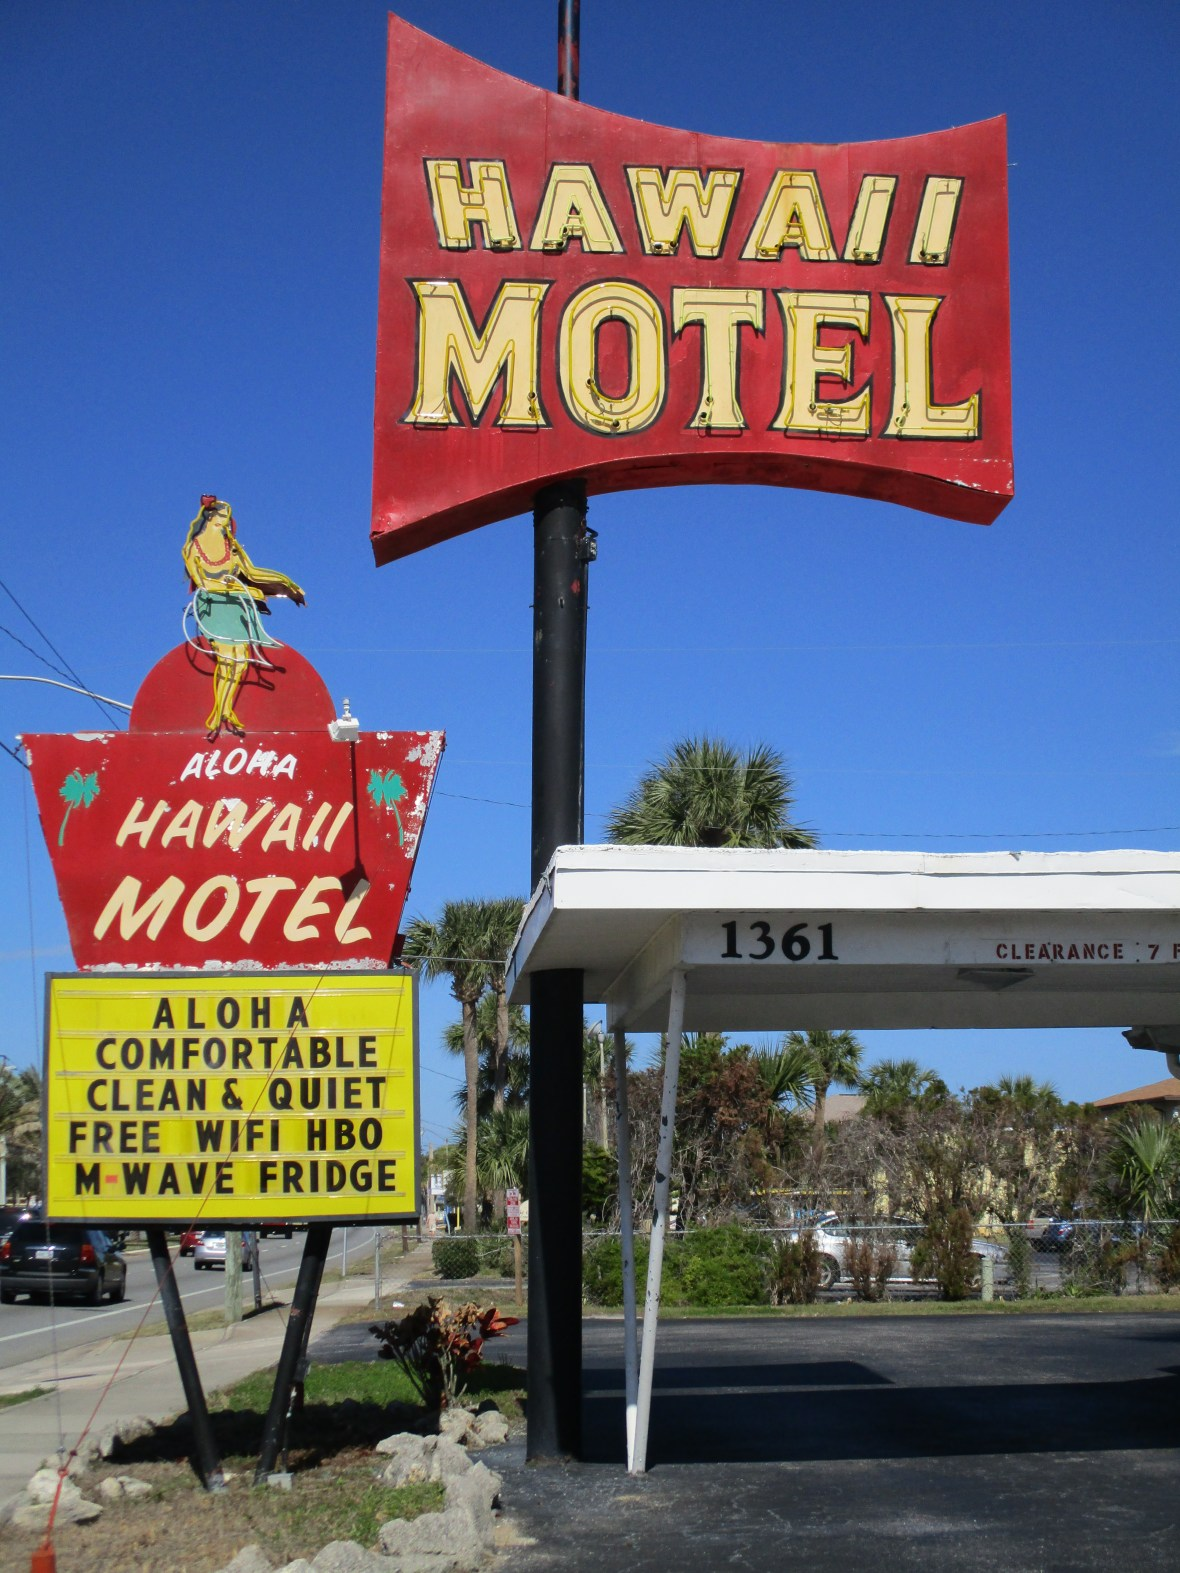 Hawaii Motel - 1361 South Ridgewood Avenue, Daytona Beach, Florida U.S.A. - February 5, 2018